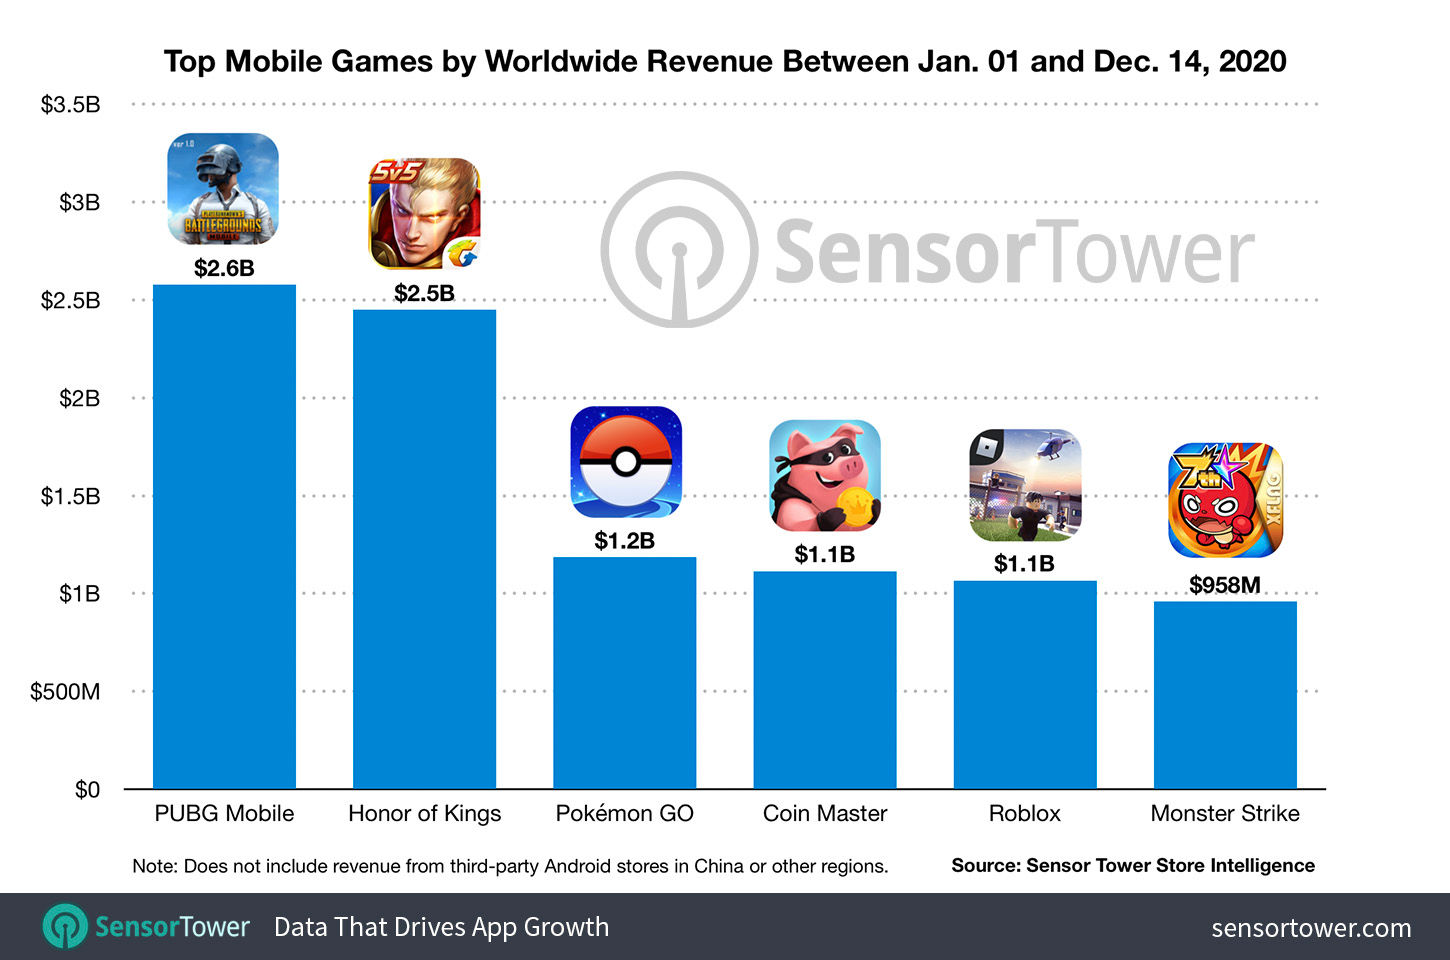 Highest Grossing Mobile Games of 2020